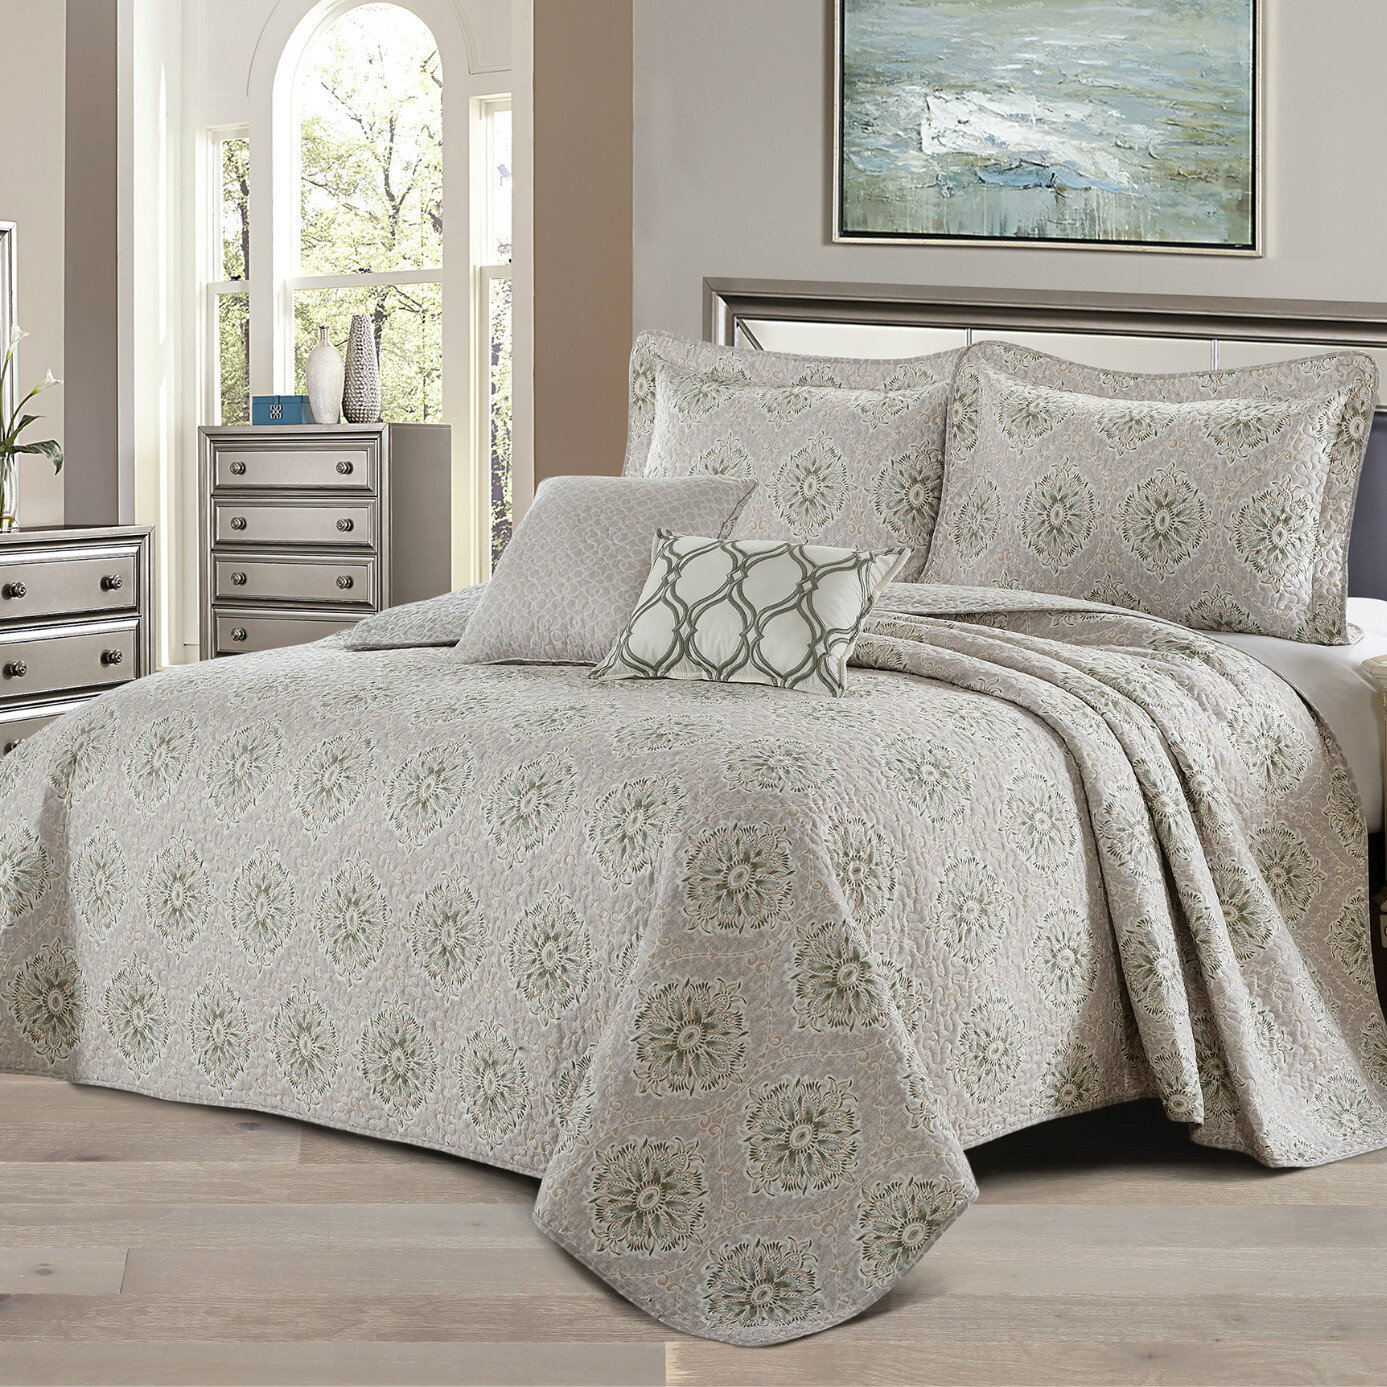 California King Geometric Quilts Coverlets Sets You Ll Love In 2021 Wayfair